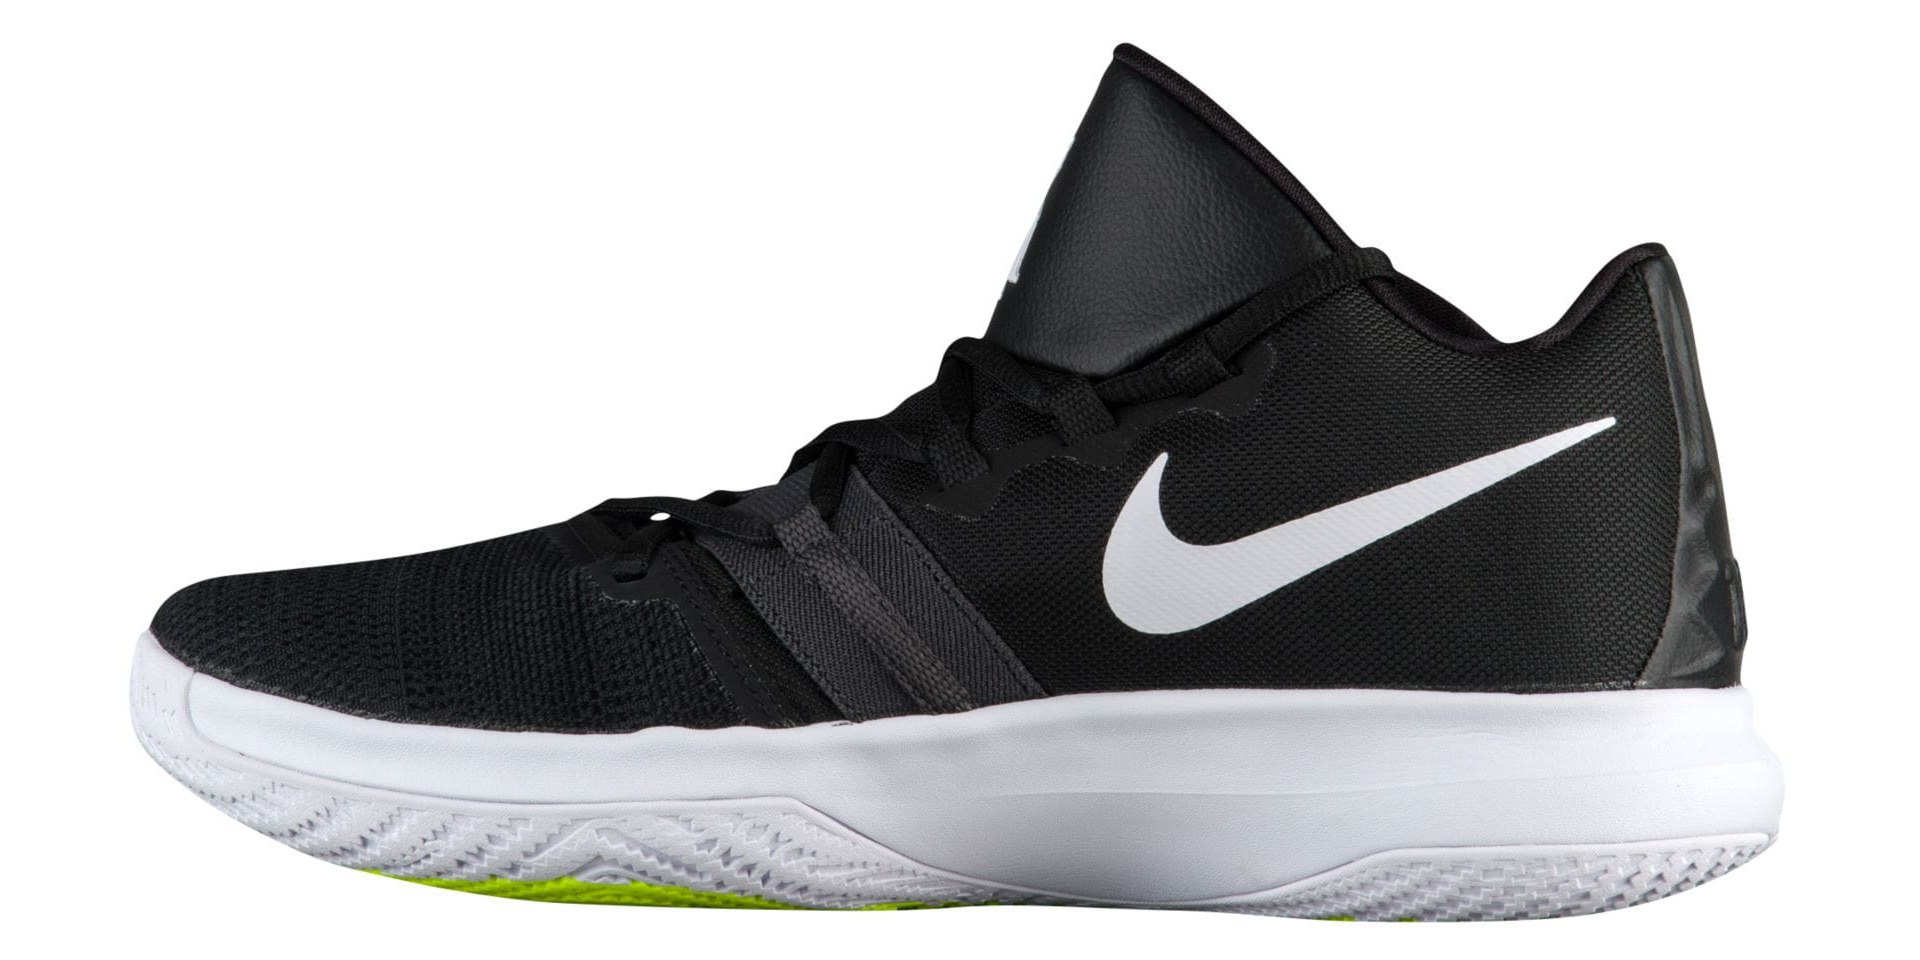 Kyrie Irving Shoes All White